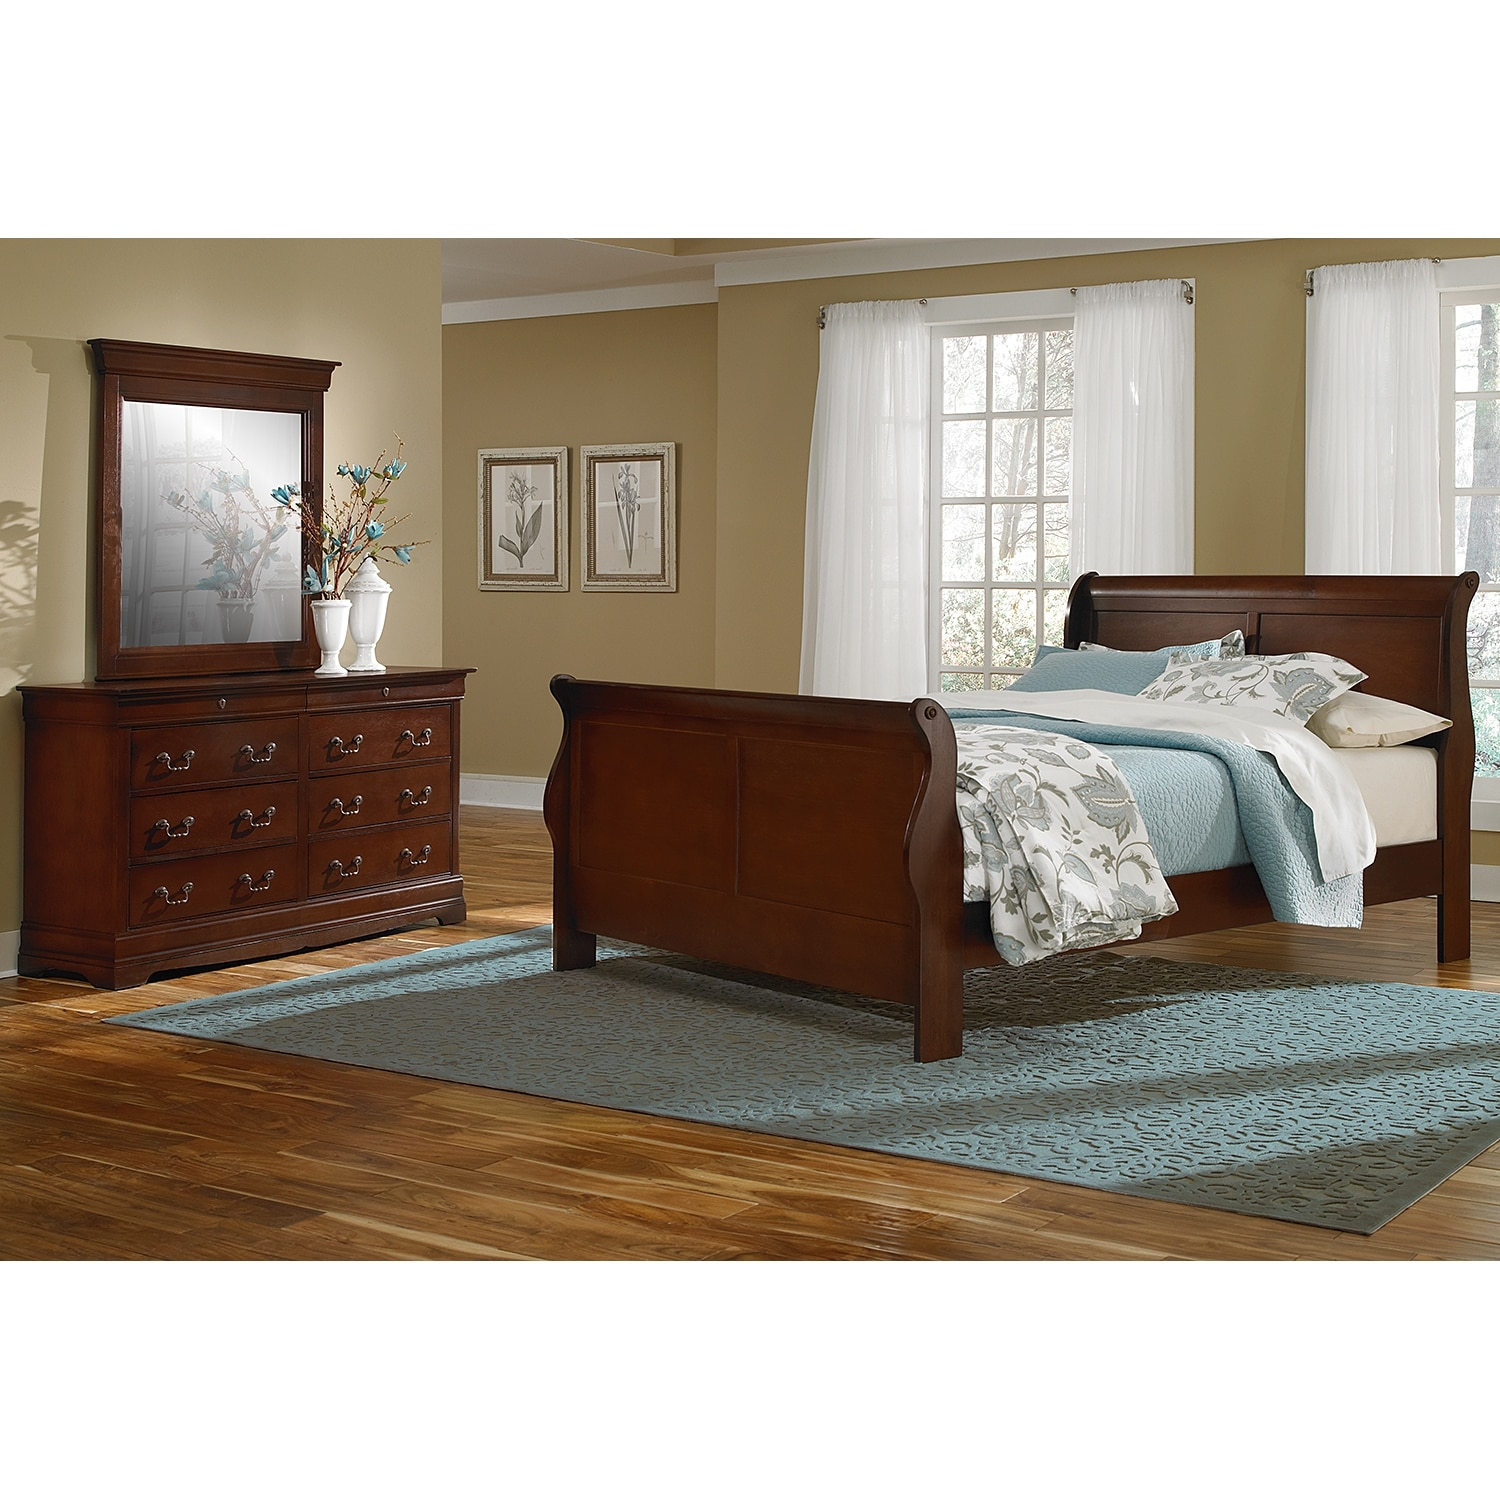 Neo Classic Youth 5-Piece Twin Bedroom Set